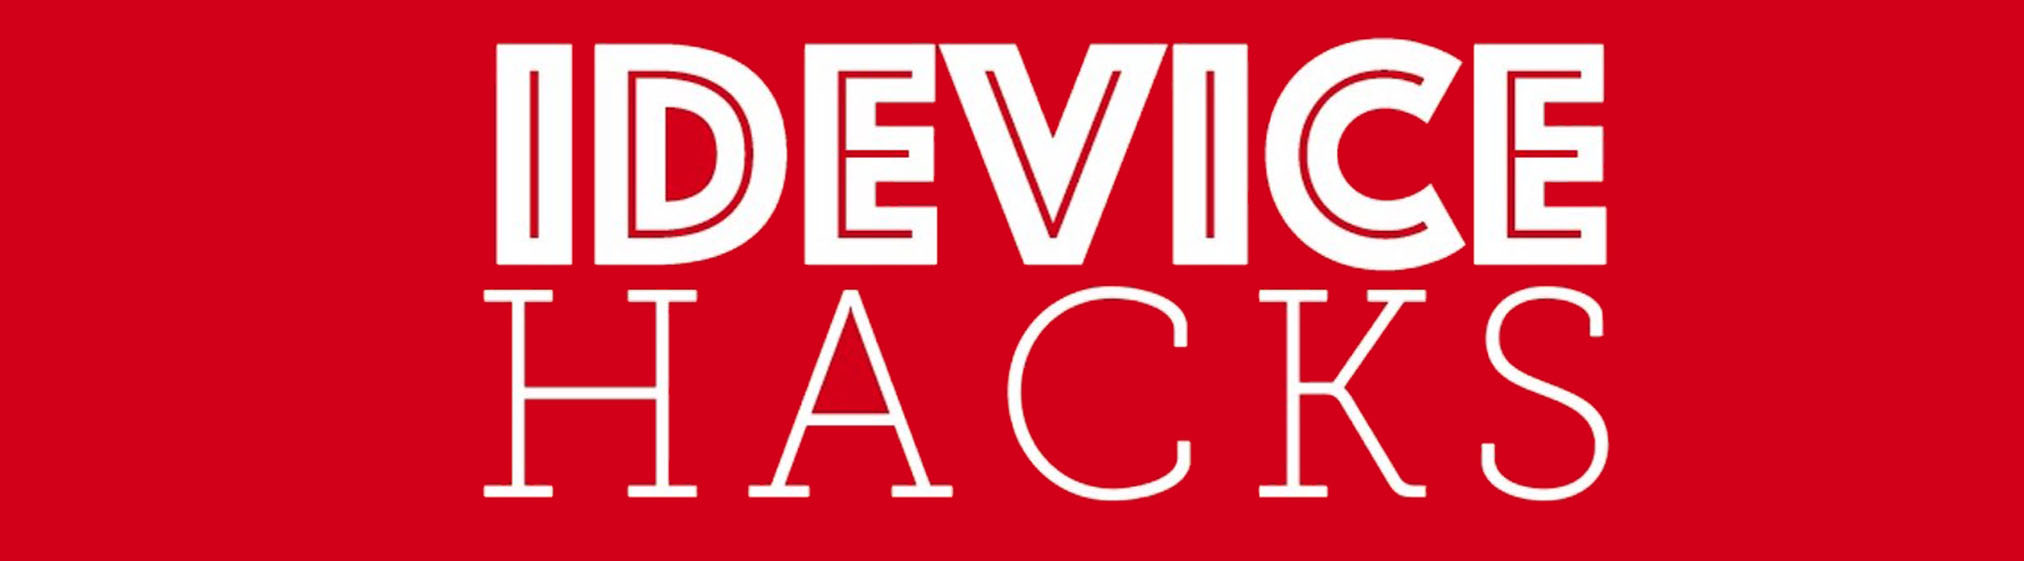 idevice hacks Unlock Jailbreak IPhone Ipad Ipod